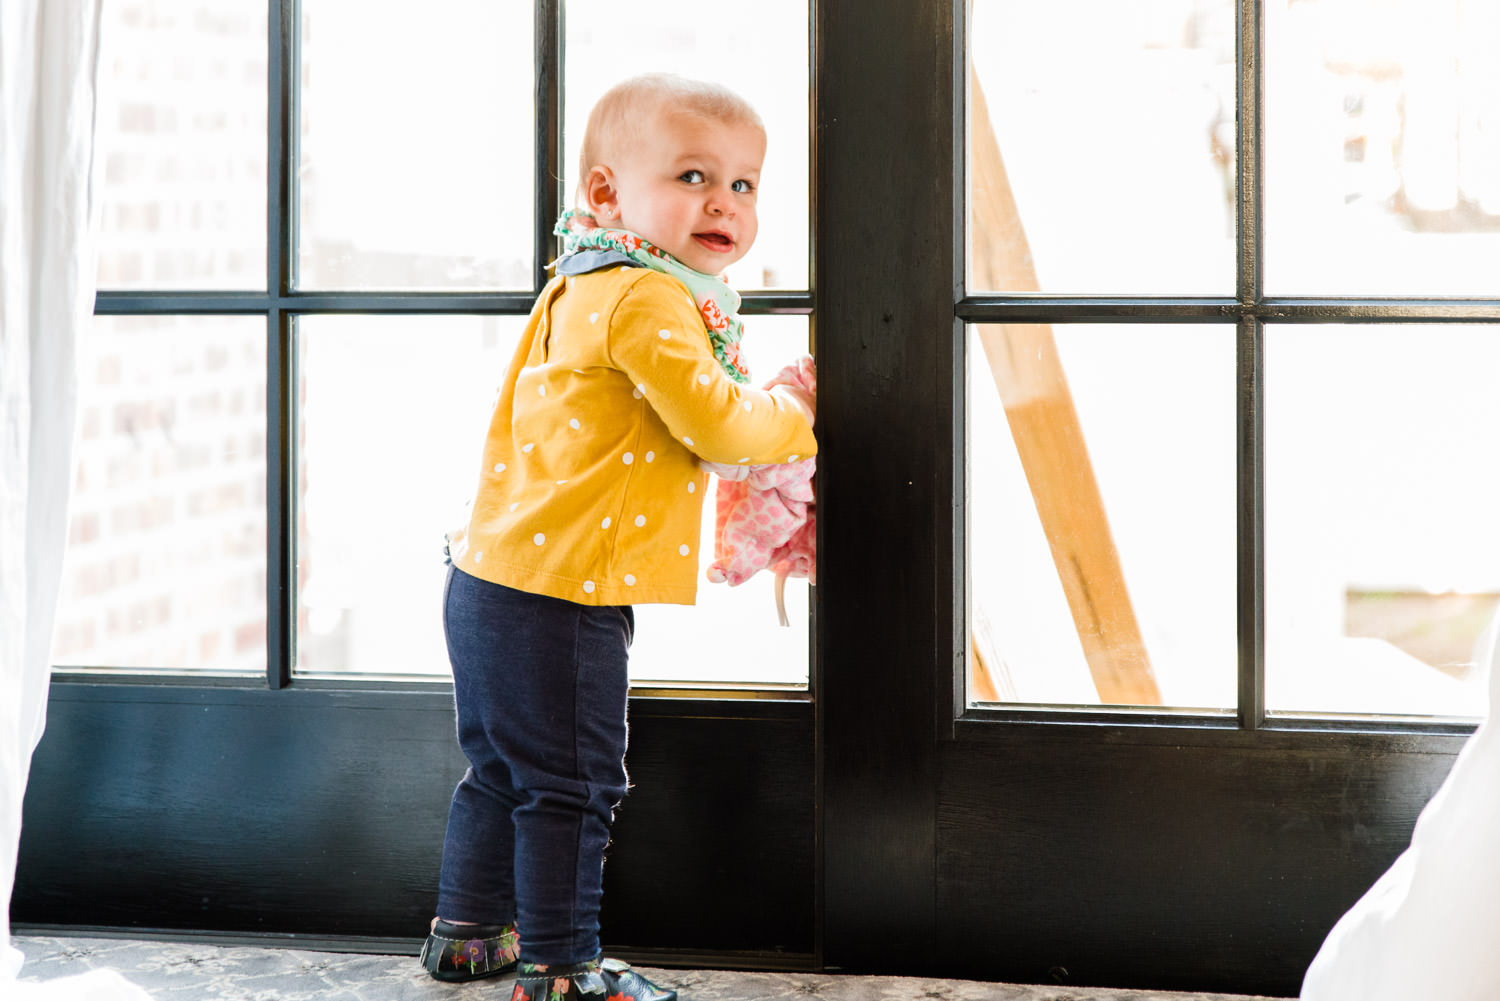 A toddler girl looks out a sliding glass door.